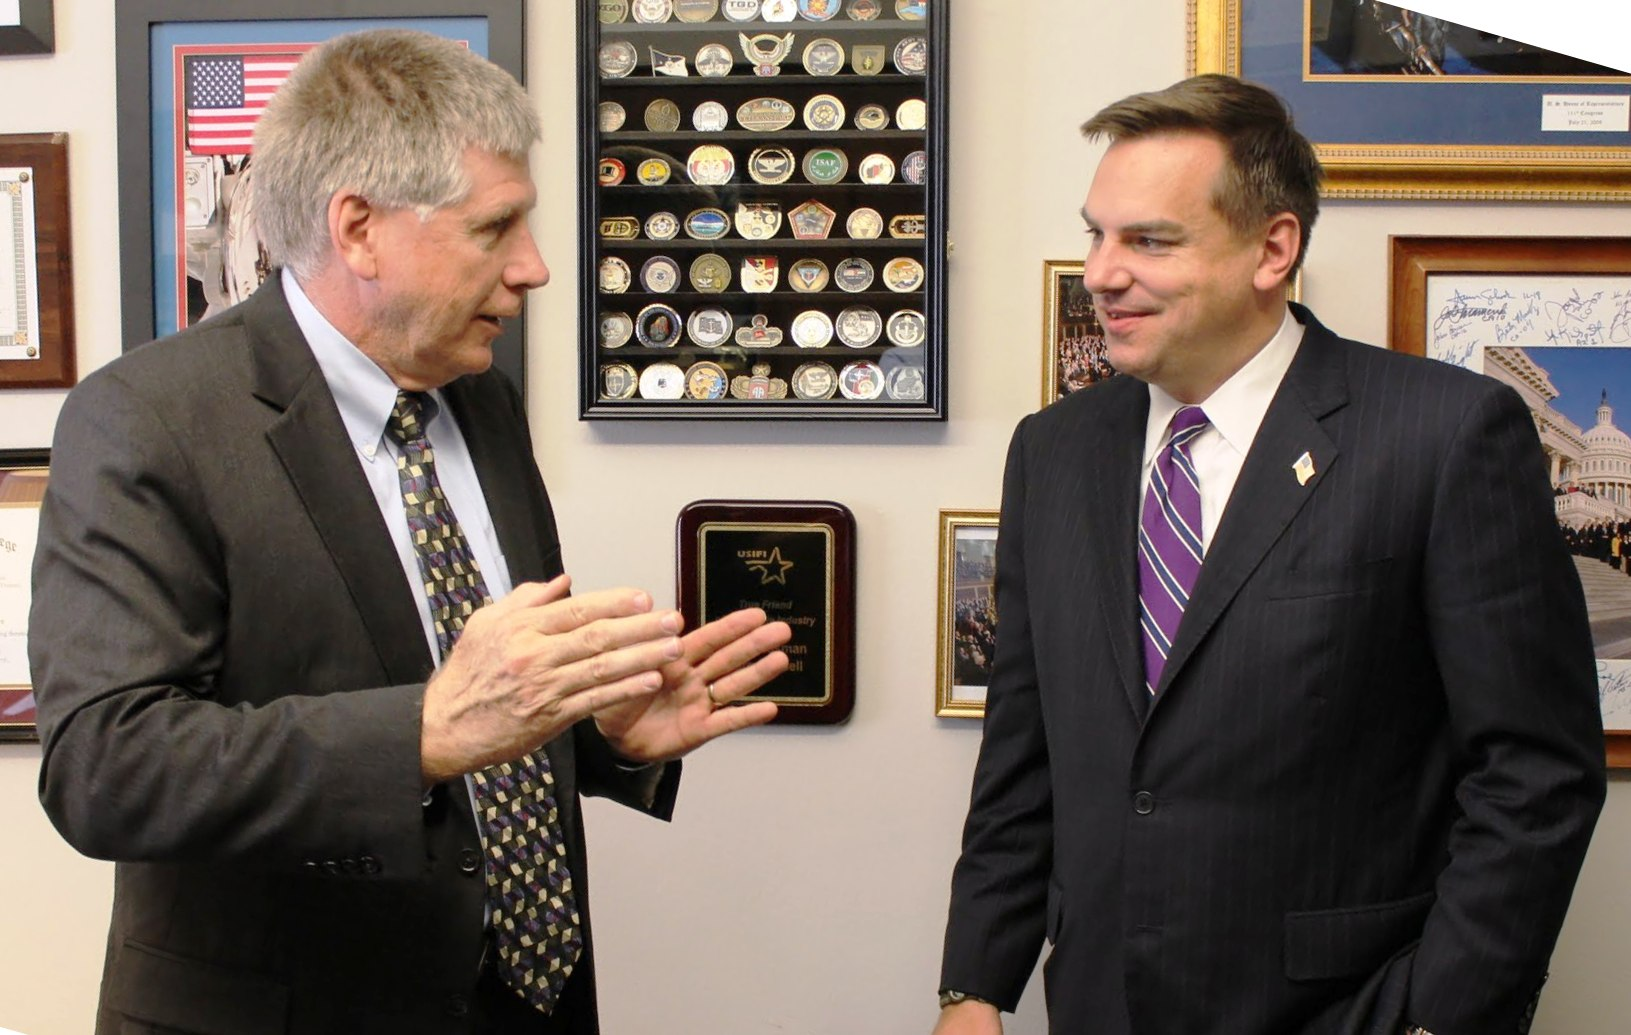 Rep. Larry Kissell welcomed Congressman-elect Richard Hudson to his Washington office today.